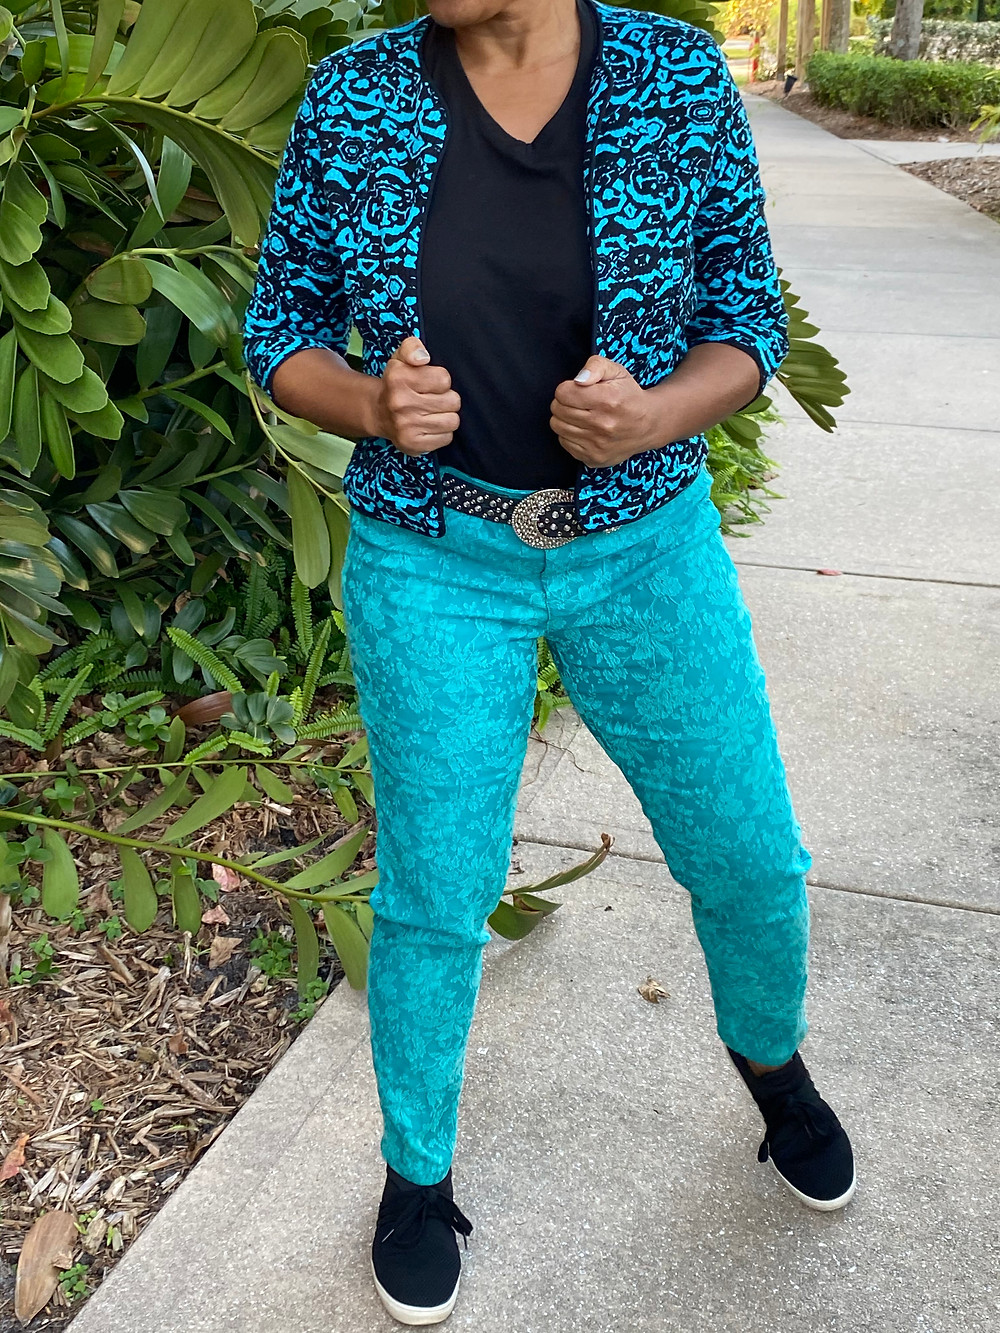 Woman wearing turquoise pants